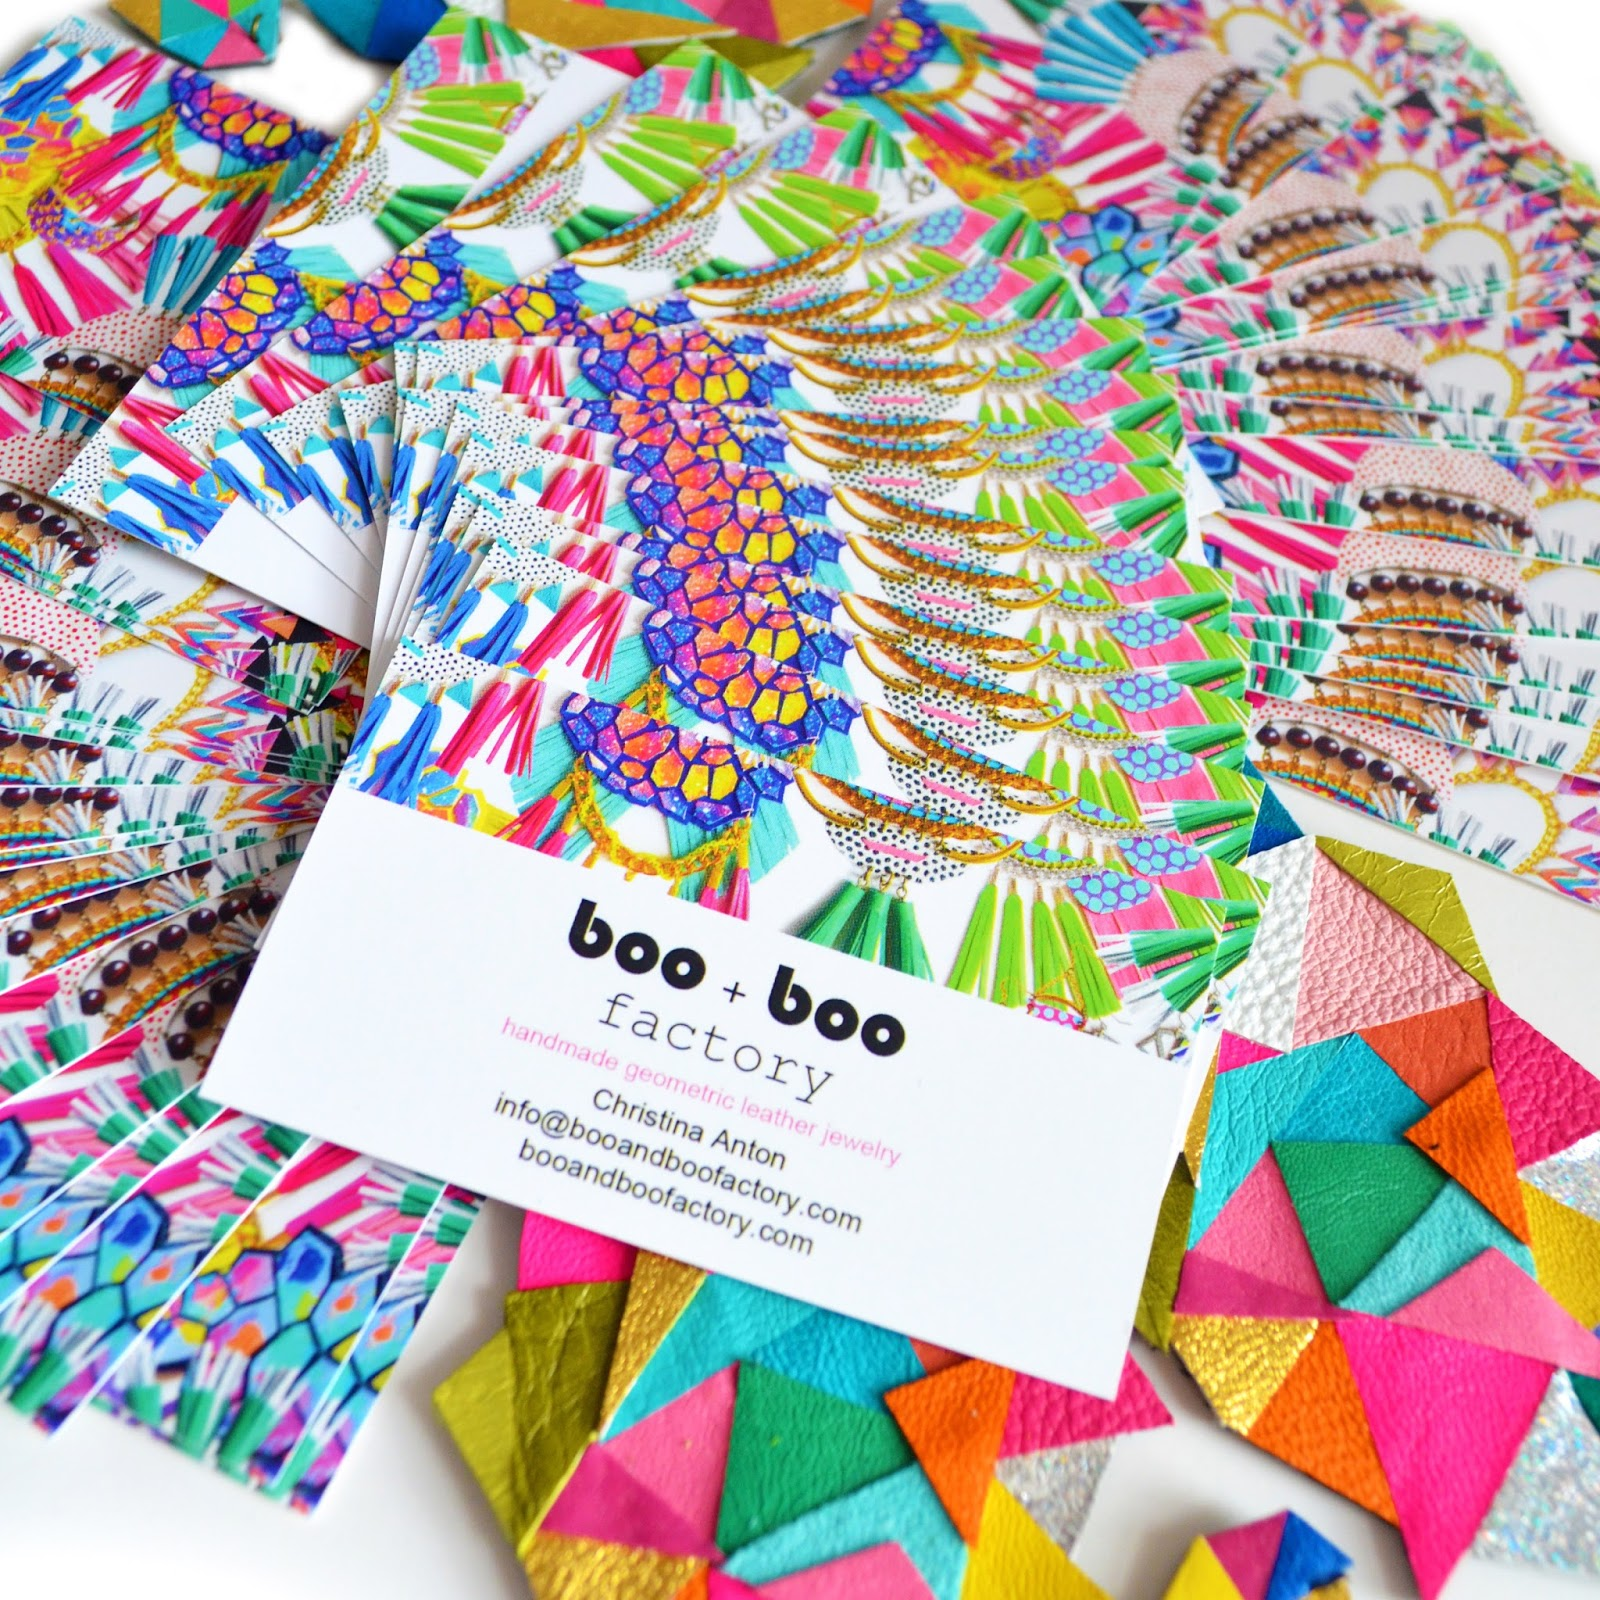 Boo and boo factory boo and boo factory business cards and large wholesale order of colorful jewelry and i have had so much fun creating these special pieces the designs are original from when i started boo and magicingreecefo Gallery